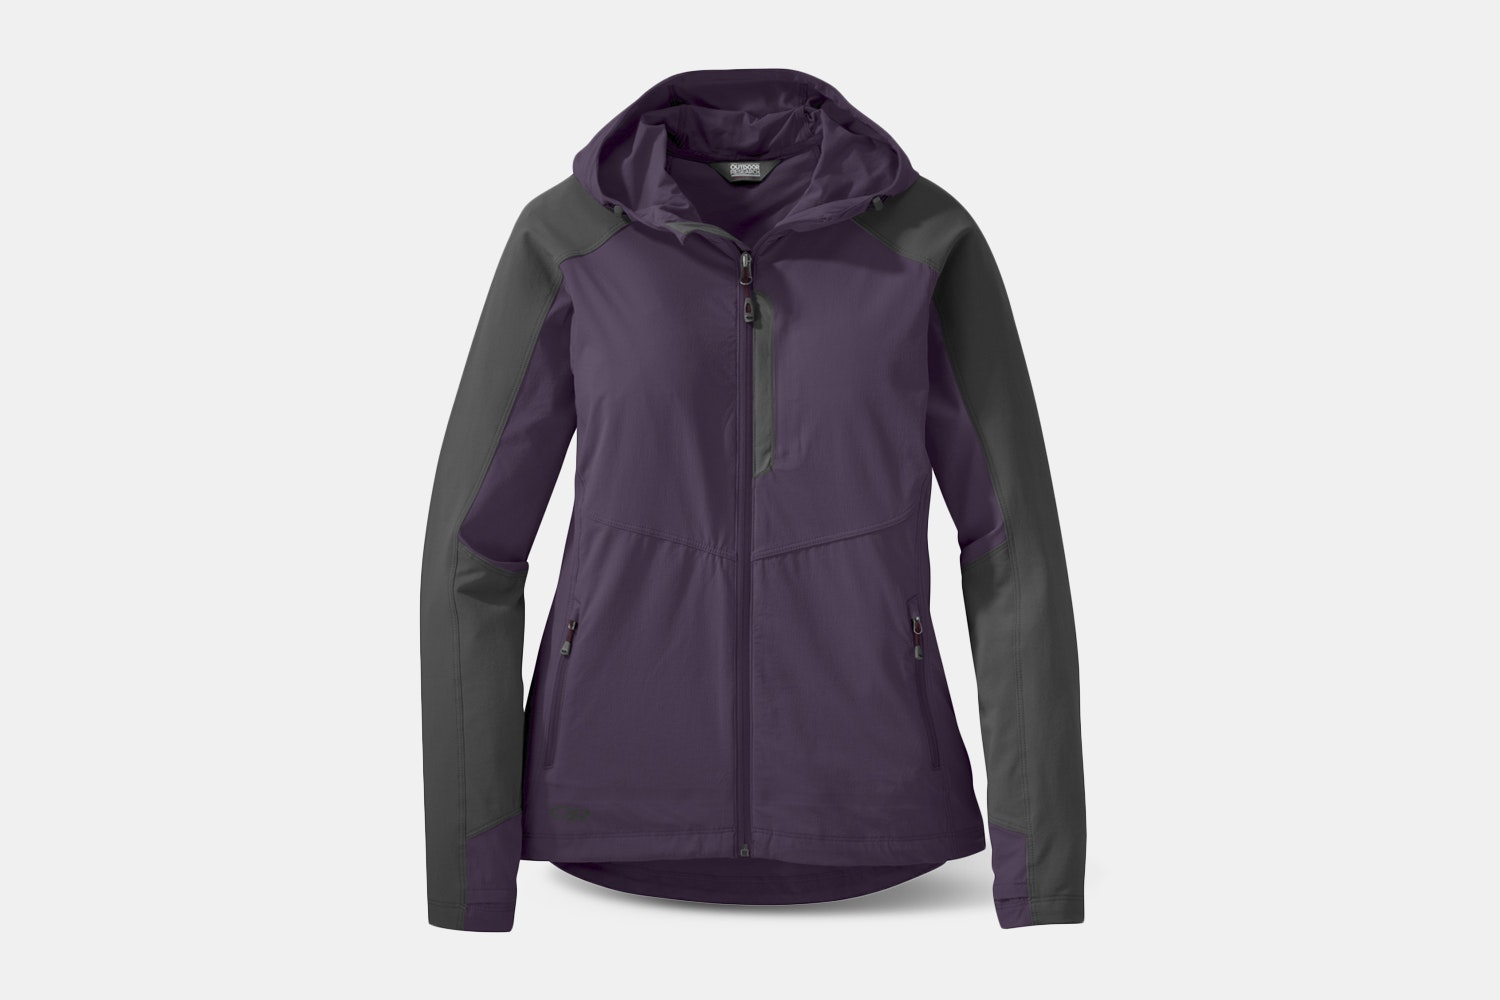 Women's – Pacific Plum/Storm